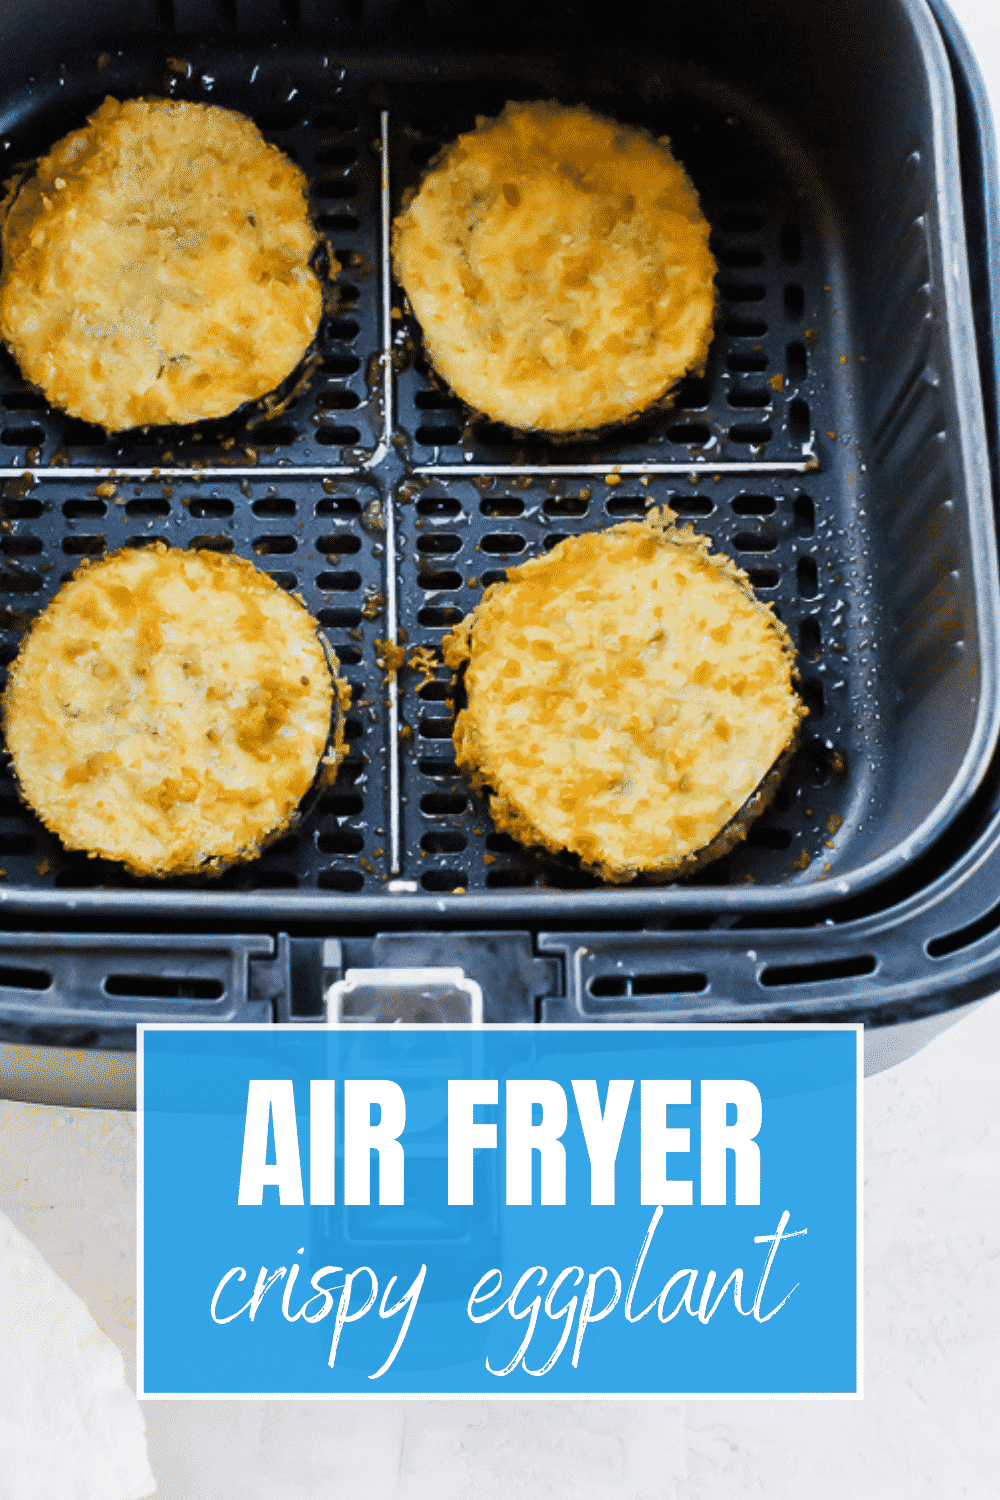 Tender slices of eggplant, air friend to crispy perfection! Crispy Air Fryer Eggplant will find a happy place on your dinner table now that you know how to make it perfectly. #eggplant #airfryer via @vegetarianmamma